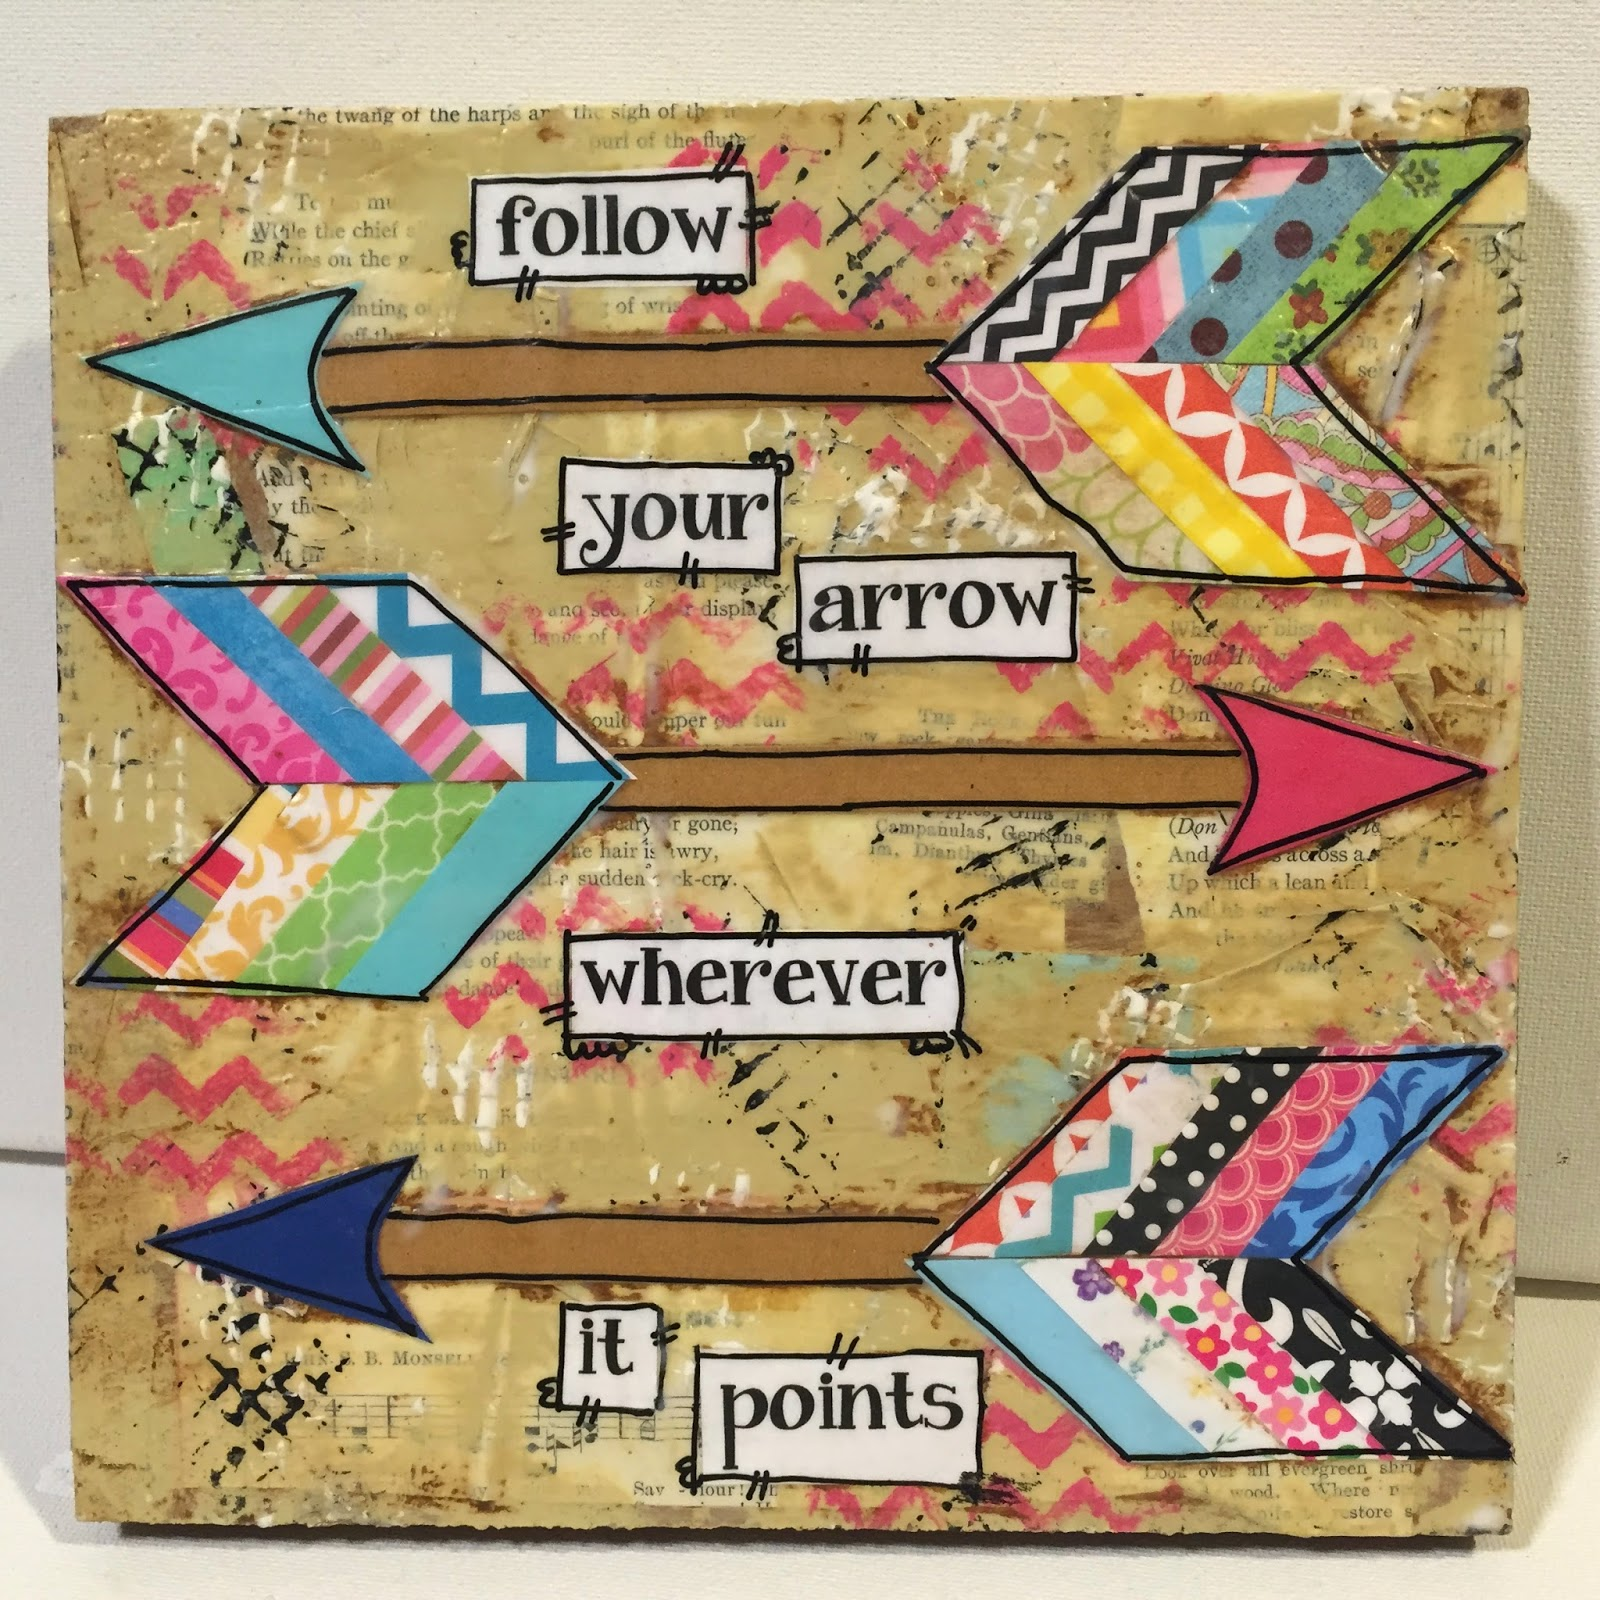 https://www.etsy.com/listing/225532800/arrow-decor-mixed-media-arrow-follow?ref=shop_home_active_2